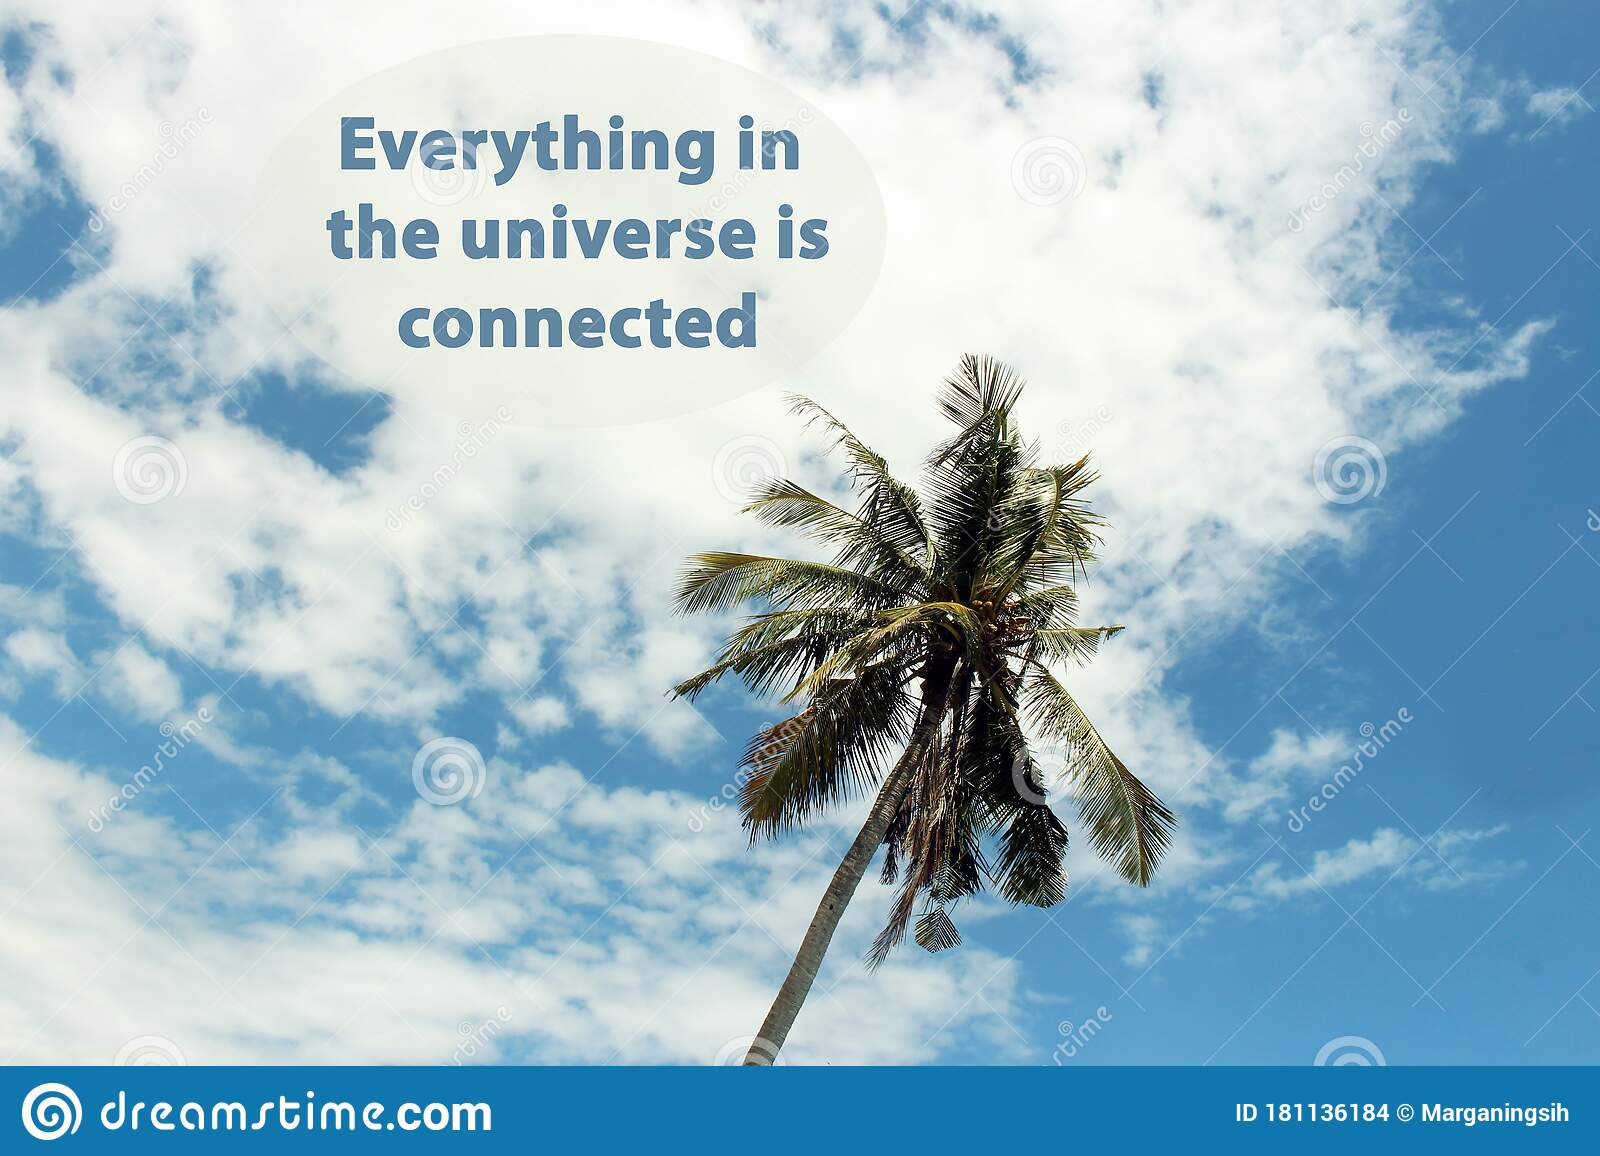 Inspirational Quote Everything In The Universe Is Connected With Single Palm Tree On Bright Blue Sky Cloud Background Stock Photo Image Of Connected Holiday 181136184